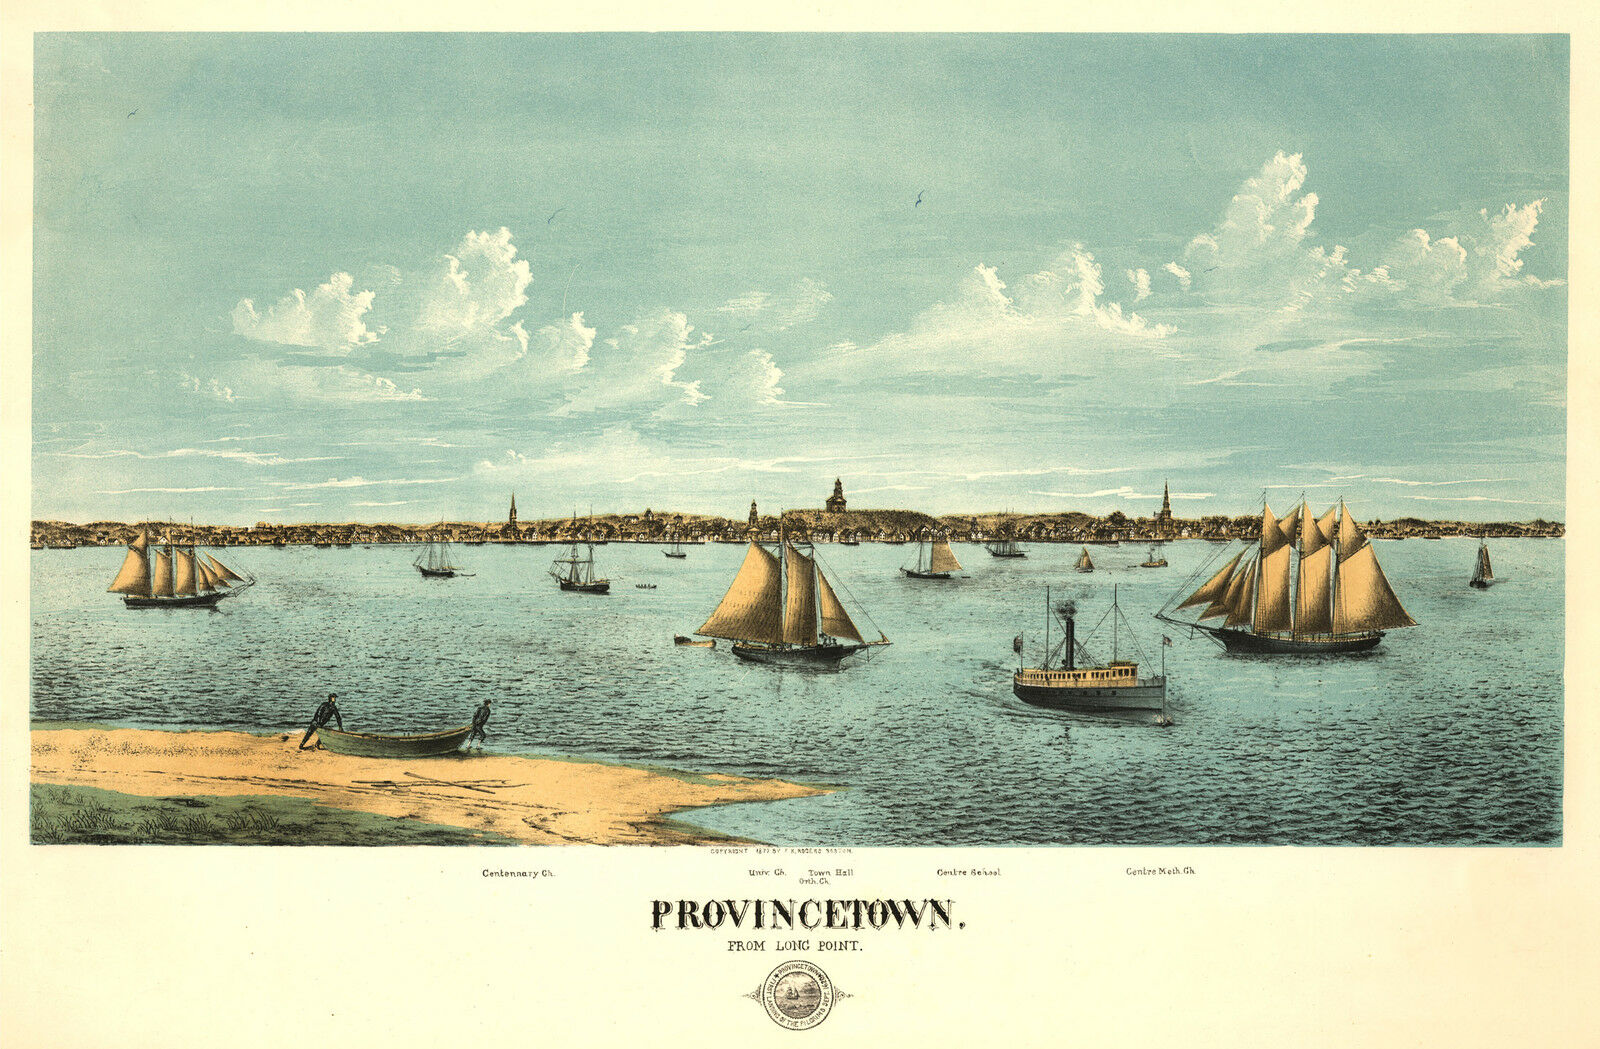 1877 Provincetown, Massachusetts City View, New England, Cape Cod, Sail Boats